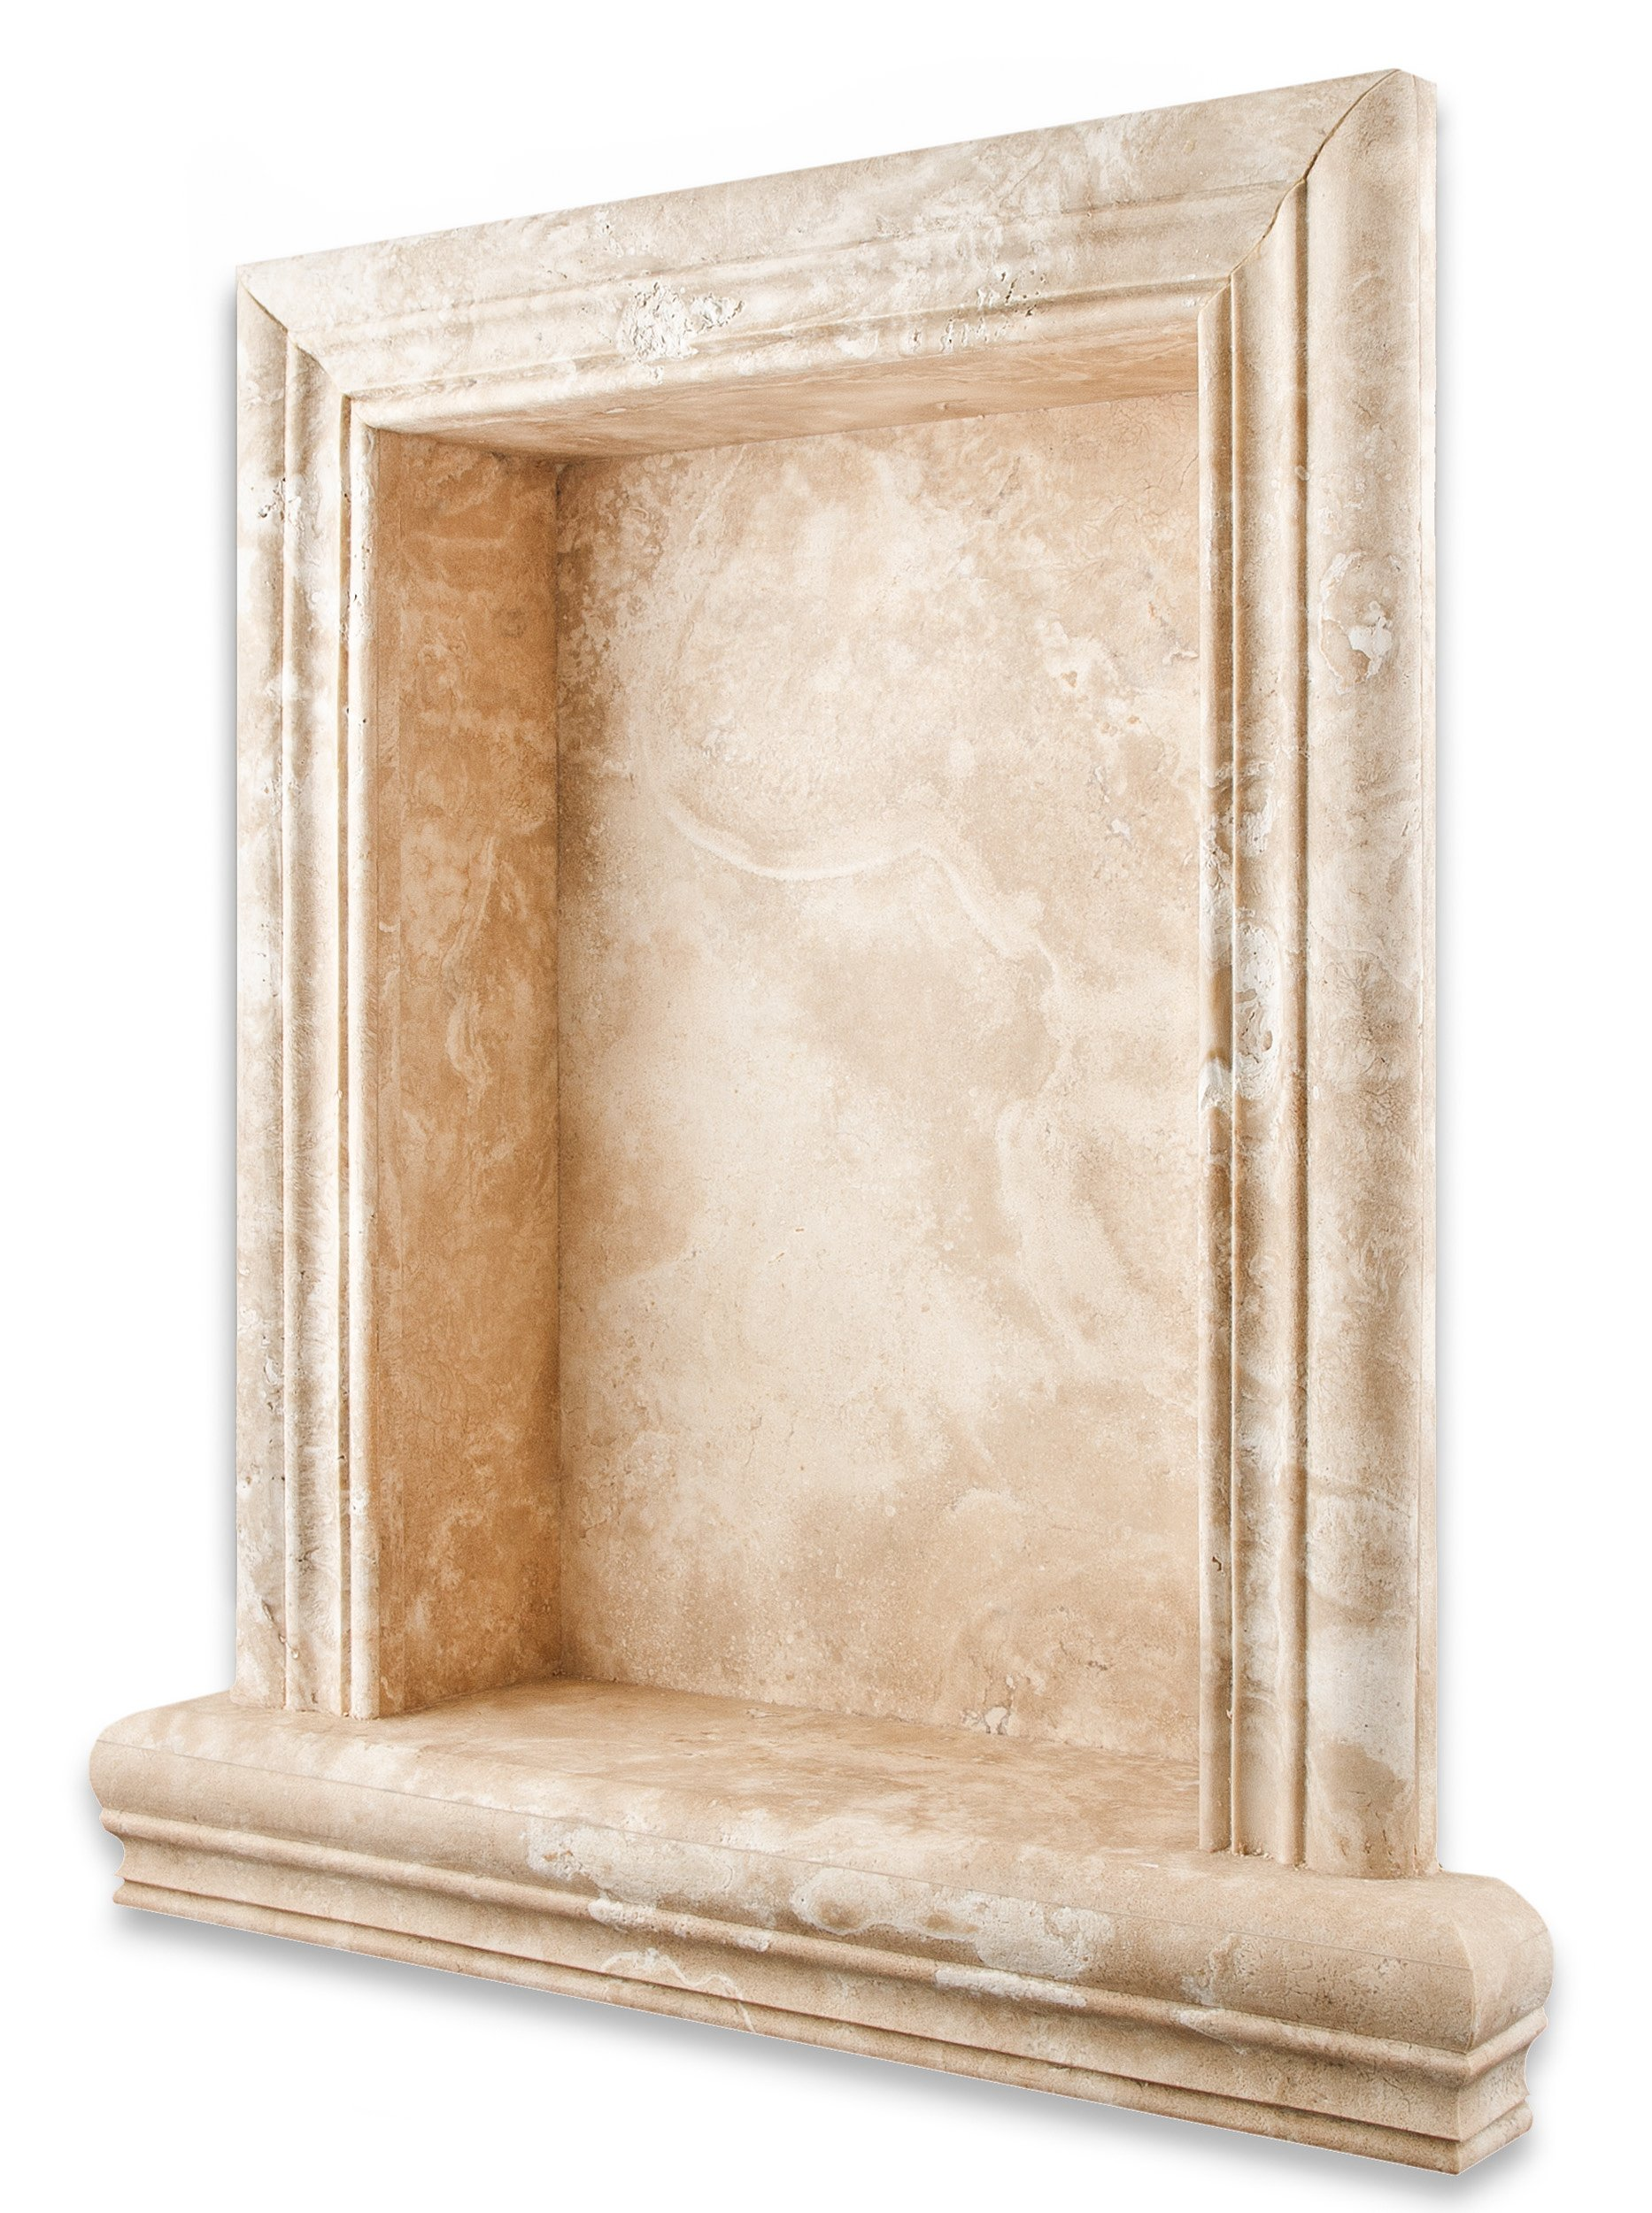 Durango Cream Travertine Honed Hand-Made Custom Shampoo Niche - LARGE